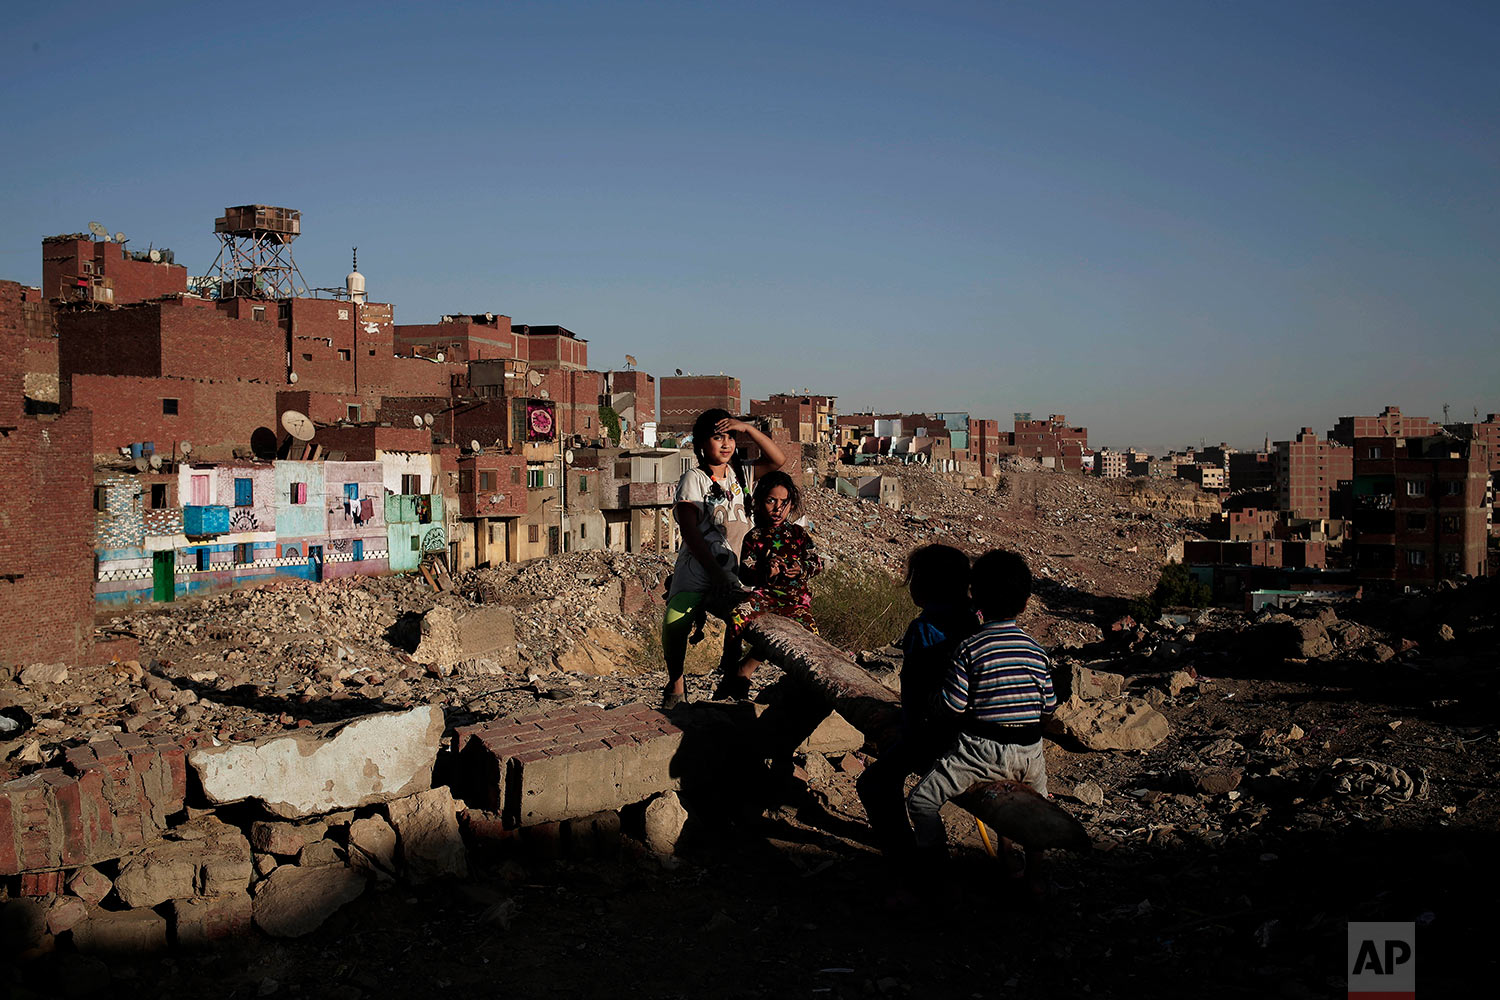 In this Oct. 28, 2018 photo, children play on a make shift see-saw made out of a tree trunk in slum area Ezbet Khairallah, Cairo, Egypt. (AP Photo/Nariman El-Mofty)